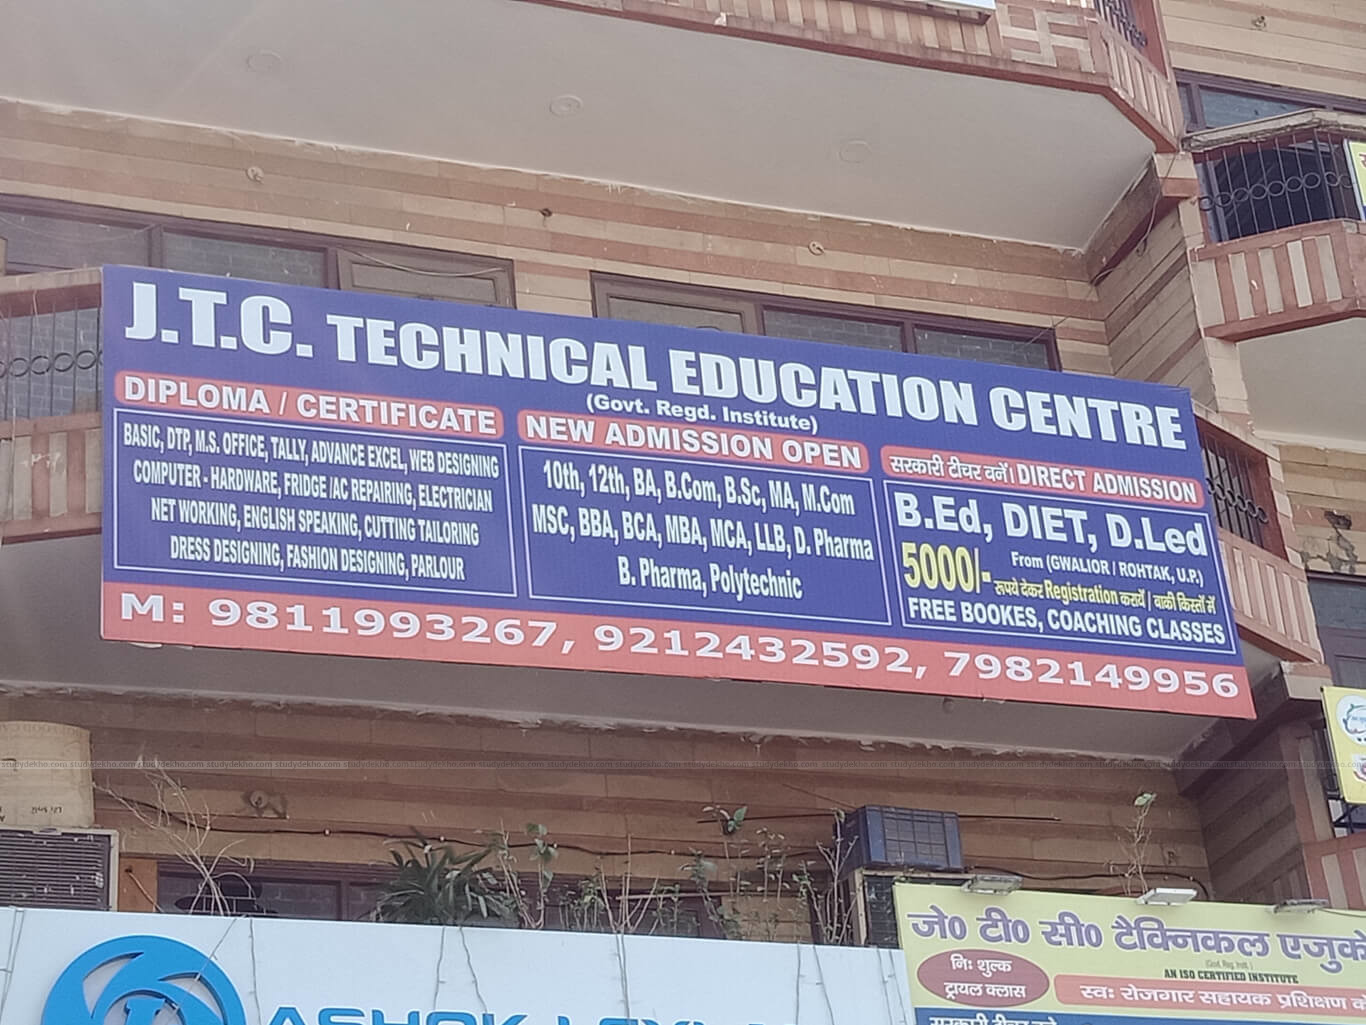 J.T.C TECHNICAL EDUCATION CENTRE Logo